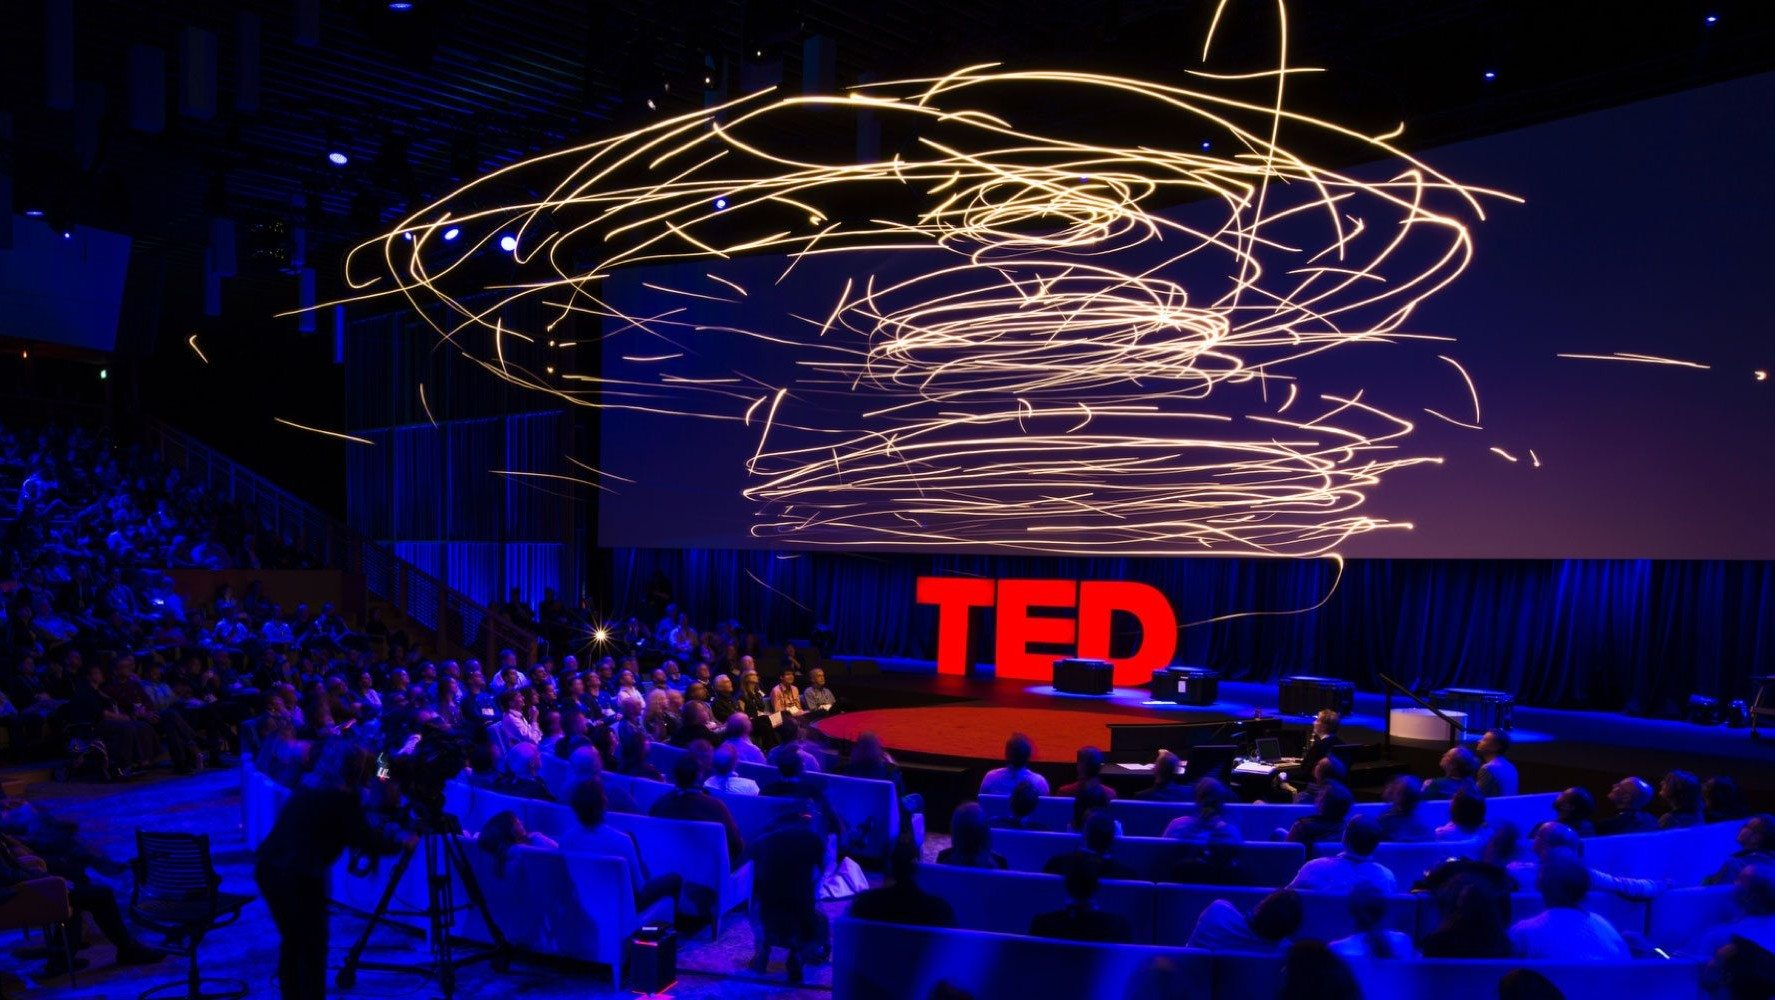 Flying Machines of the Future TED Talk, drones flying above the TED audience